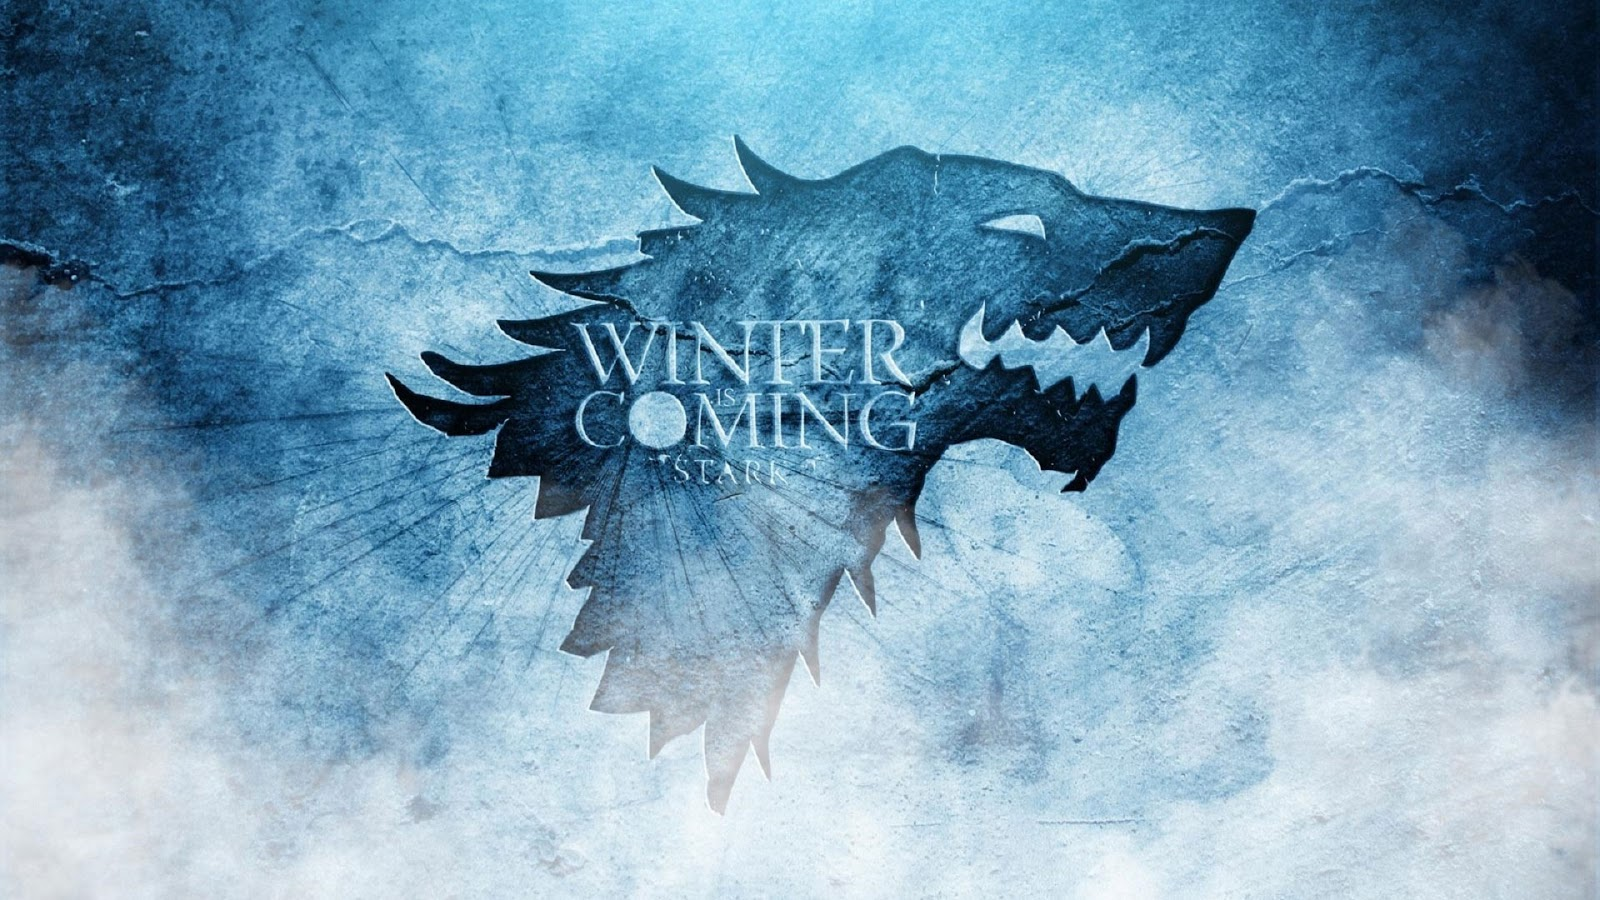 Awesome Game of Thrones Wallpaper 40890 1600x900px 1600x900